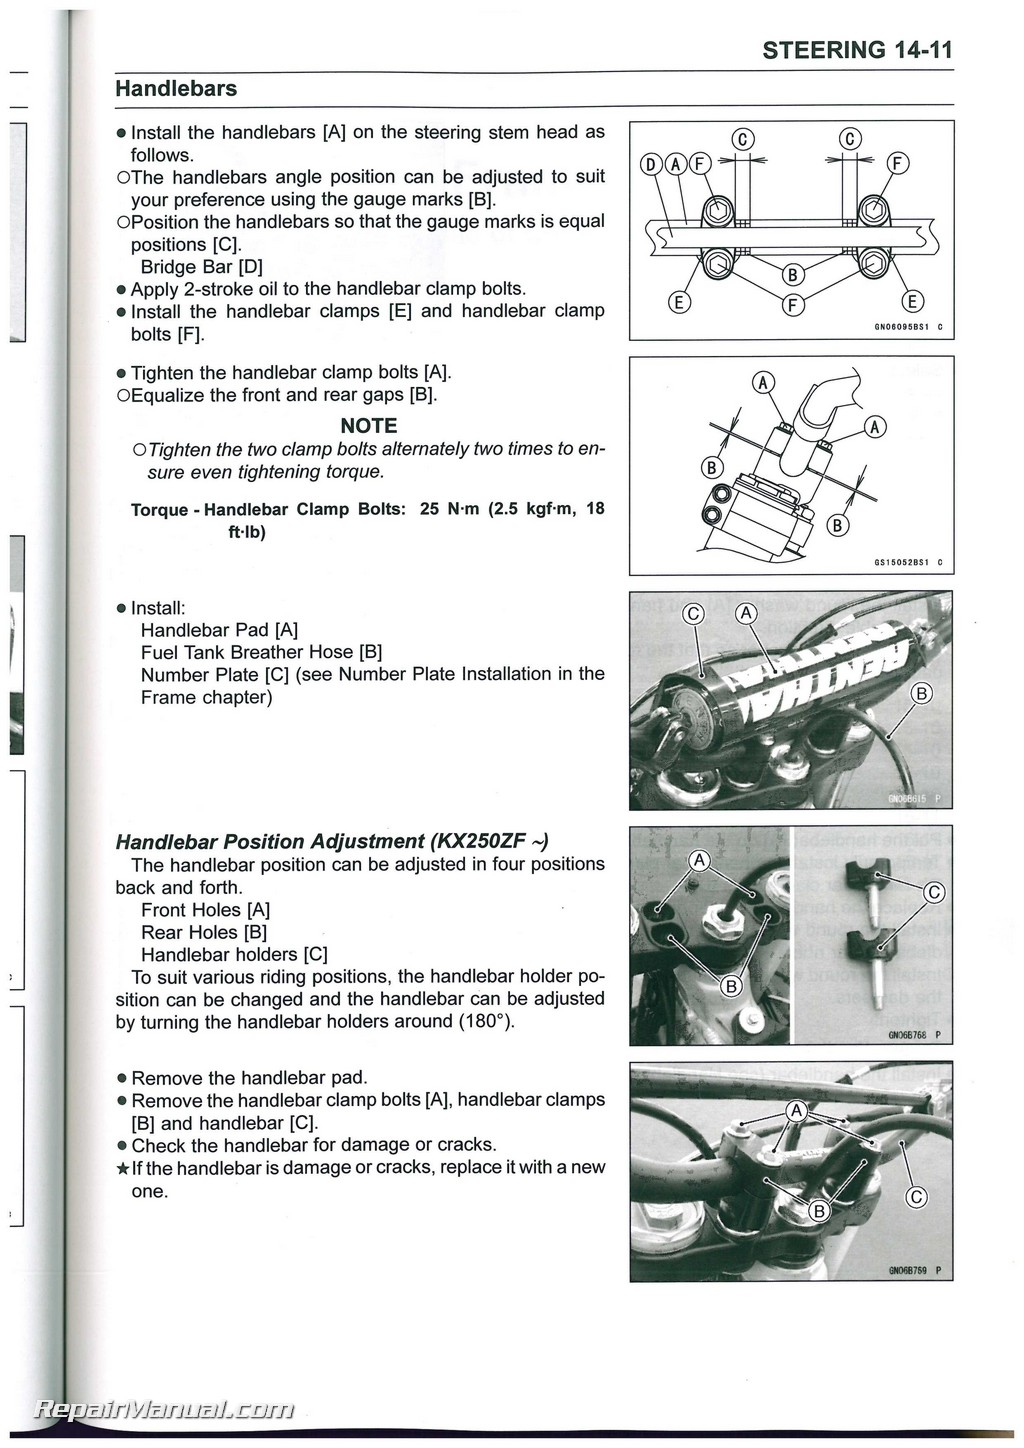 2013-2016 Kawasaki KX250F Motorcycle Service Manual